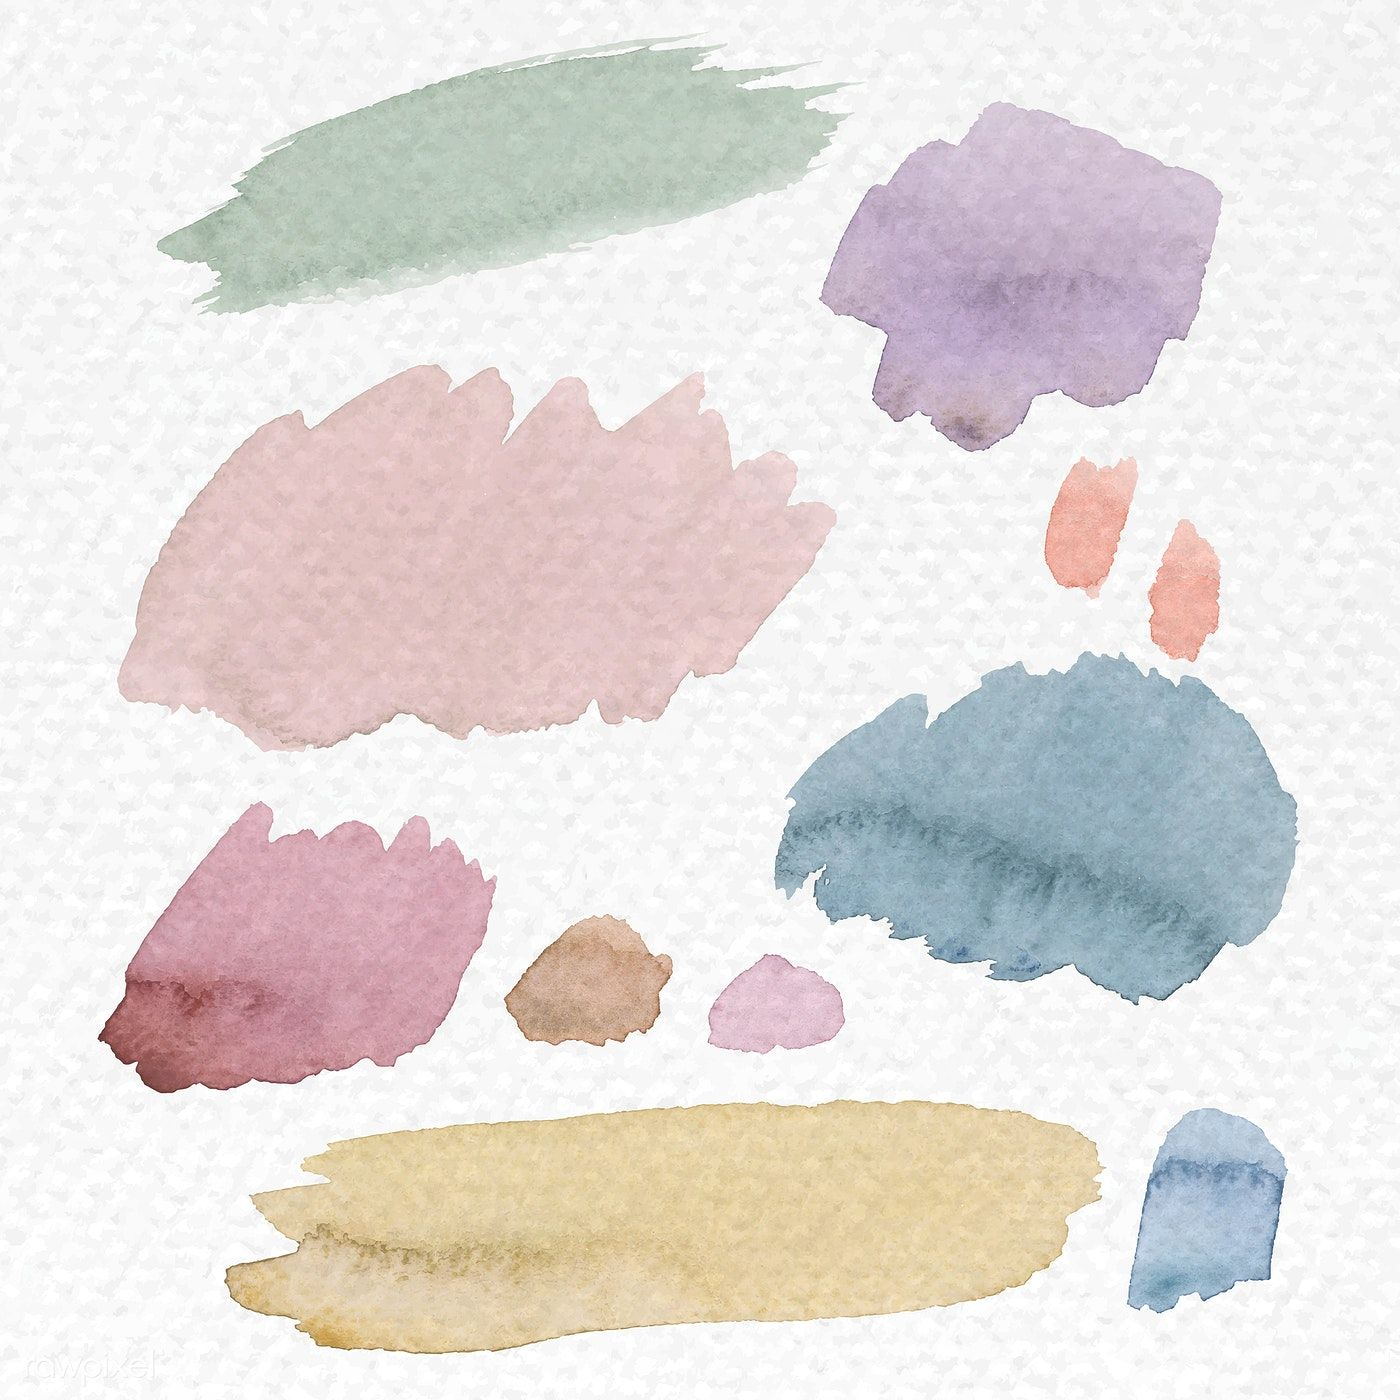 Colorful Watercolor Brush Strokes Background Vector Free Image